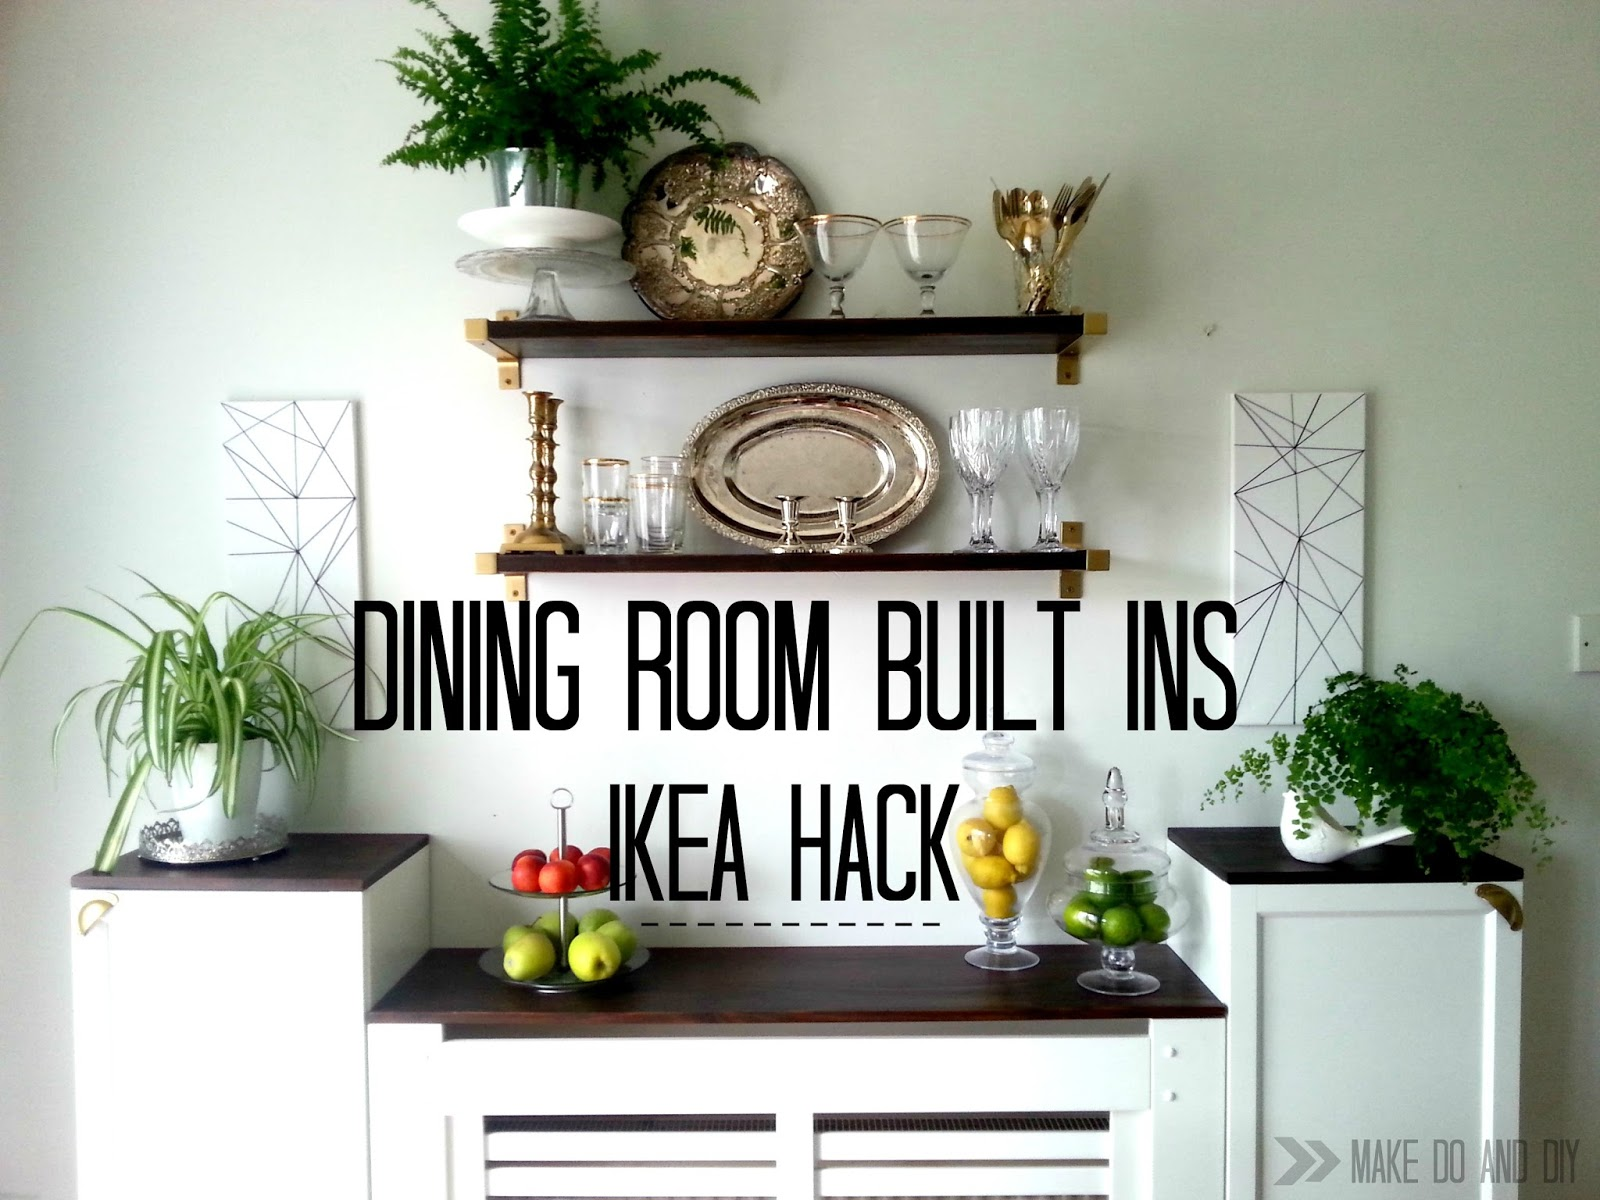 Ikea Hack, Dining Room Buit In Storage From Billy Bookcases And Ekby Shelve